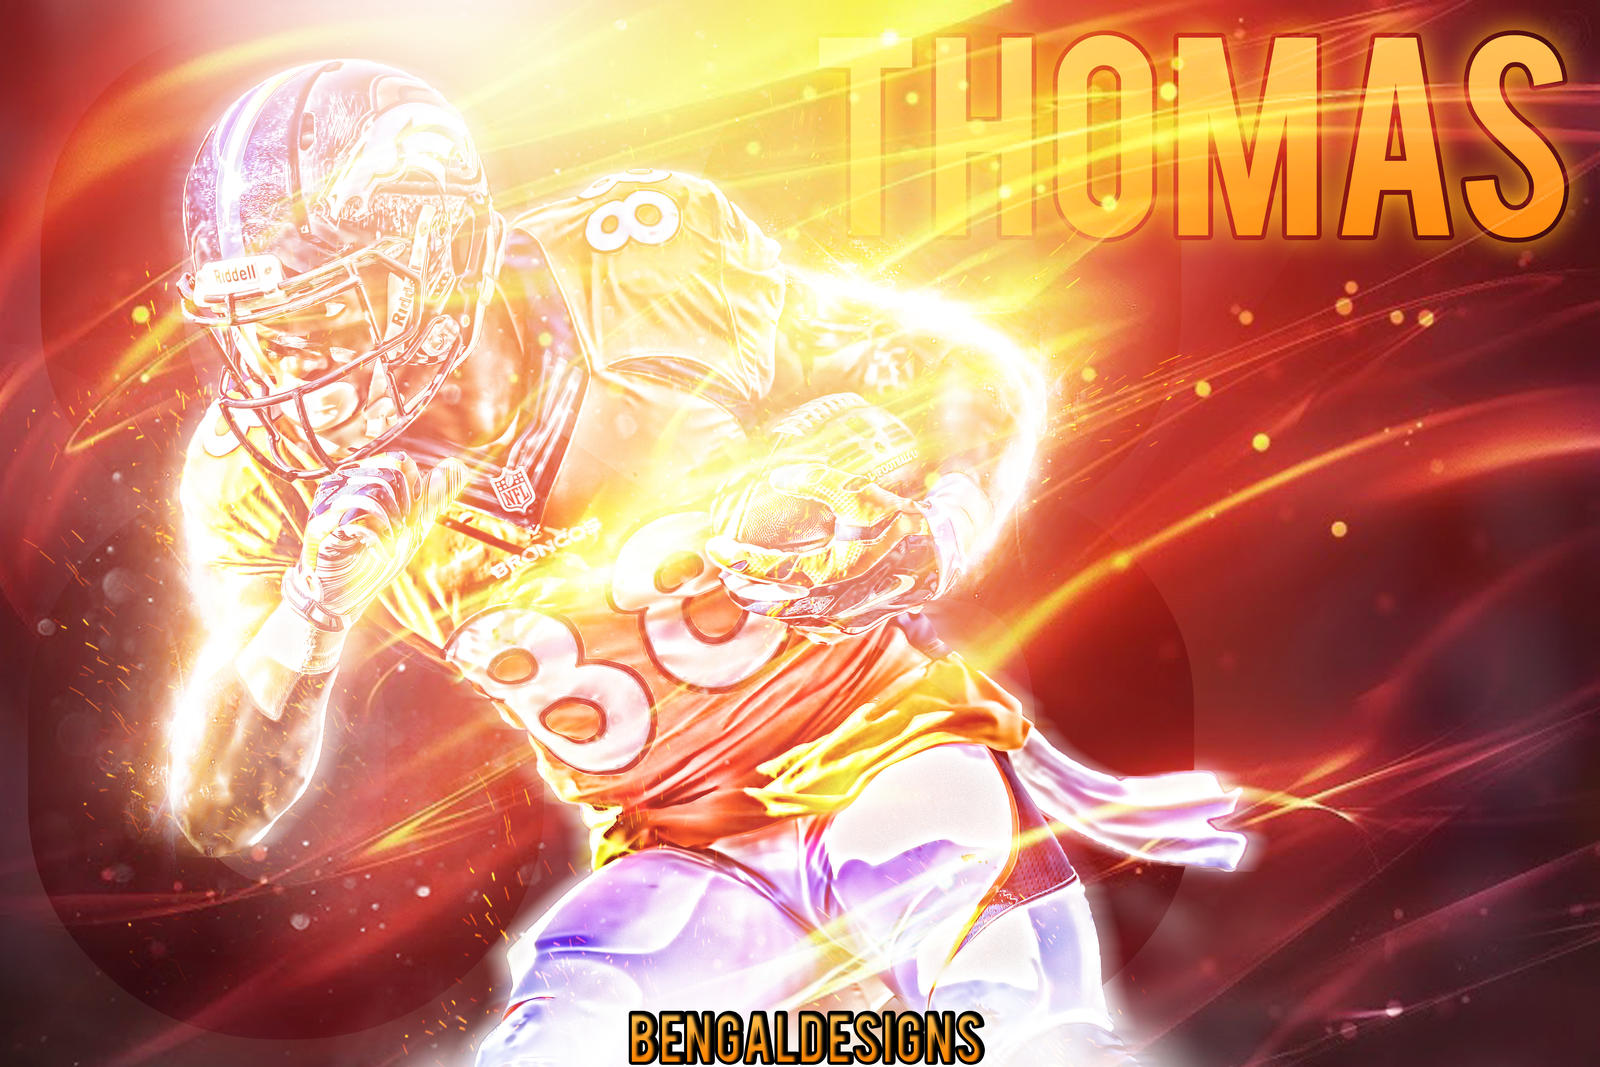 Demaryius Thomas Wallpaper by Bengal by bengalbro on ...Demaryius Thomas Wallpaper